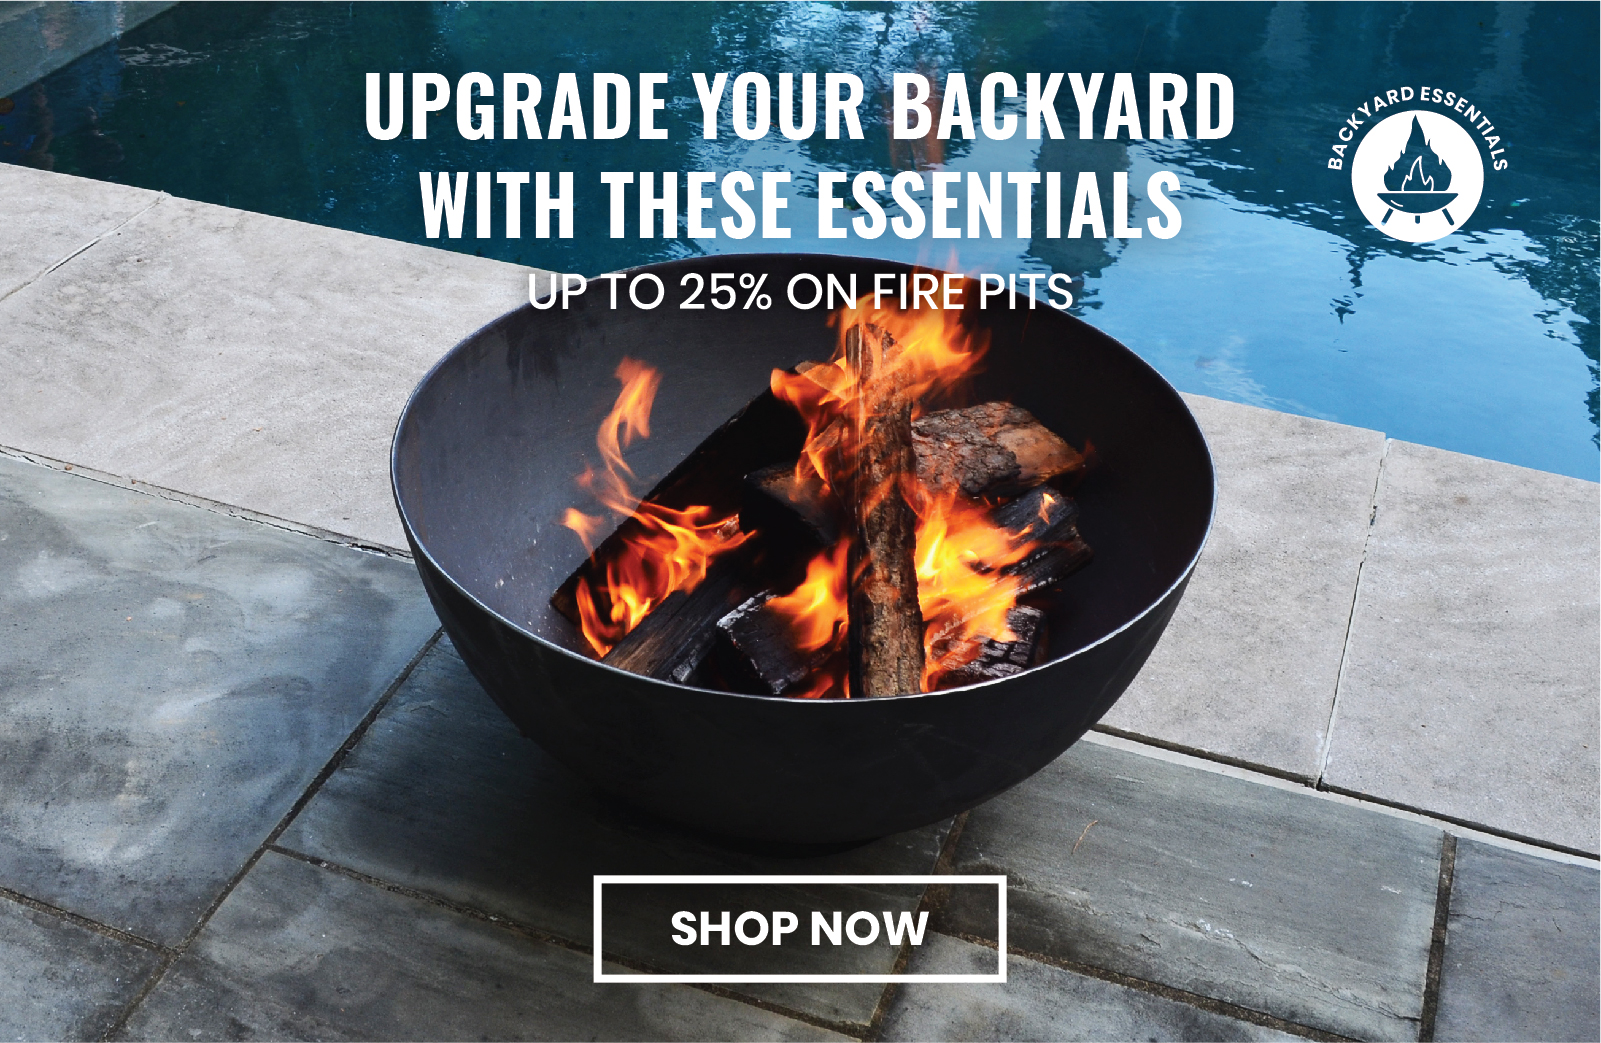 Promotion - Backyard Essentials, Fire Pits